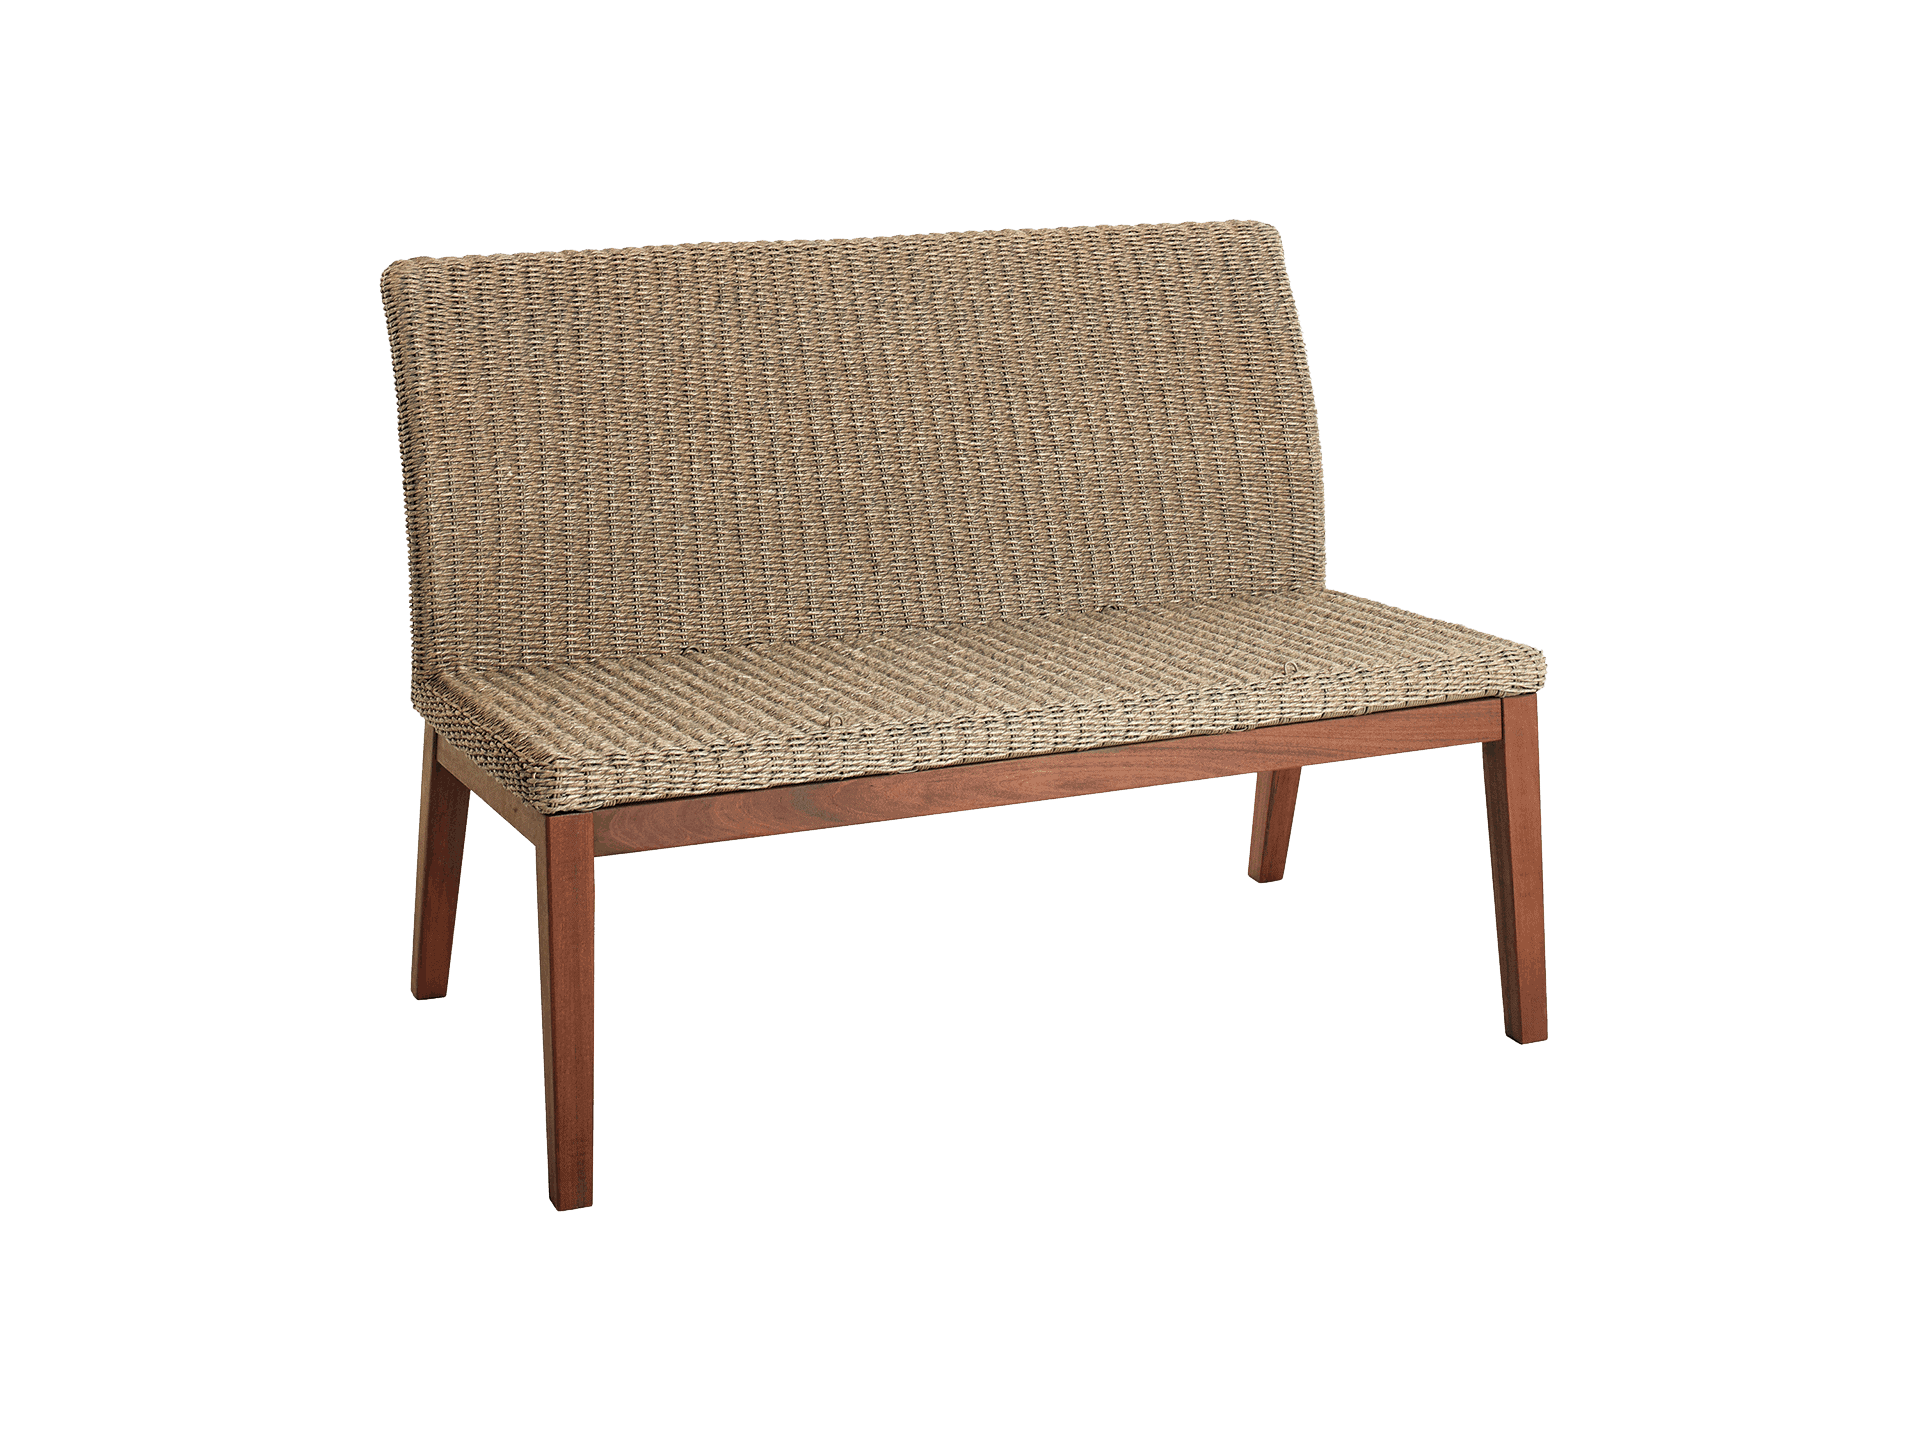 Coral Bench - Jensen Leisure Furniture